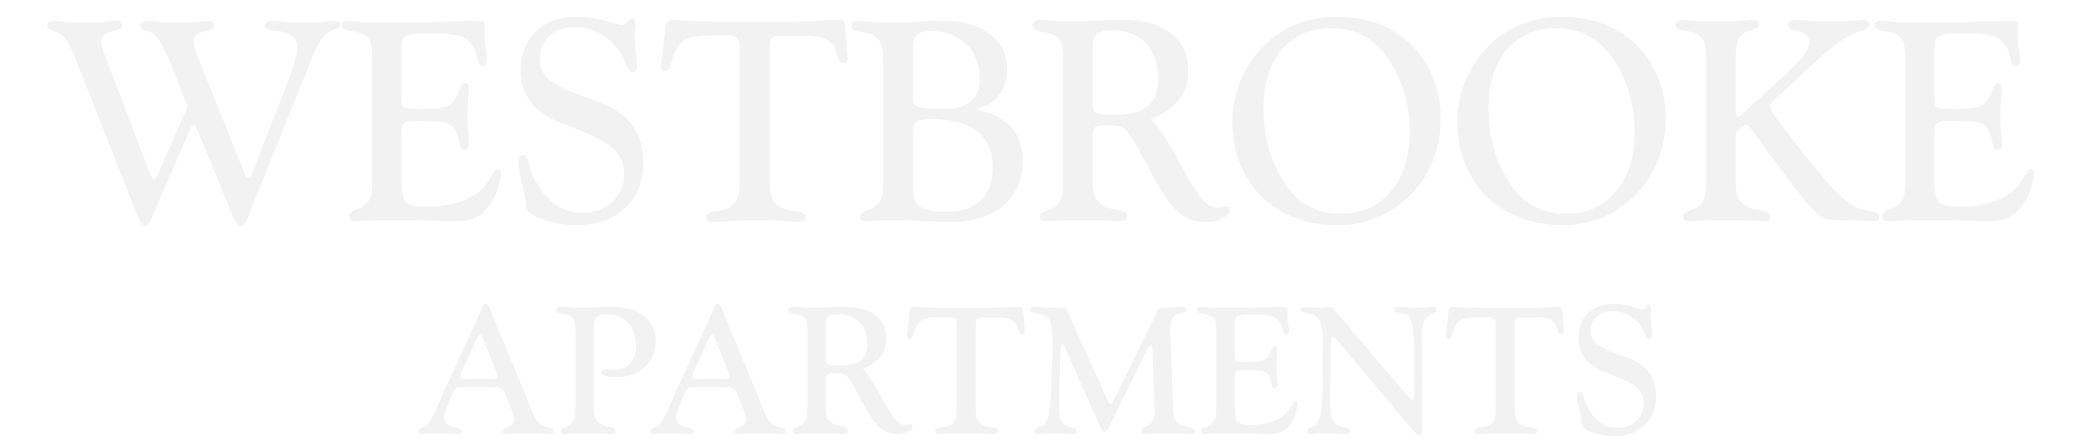 Westbrooke Apartments Logo